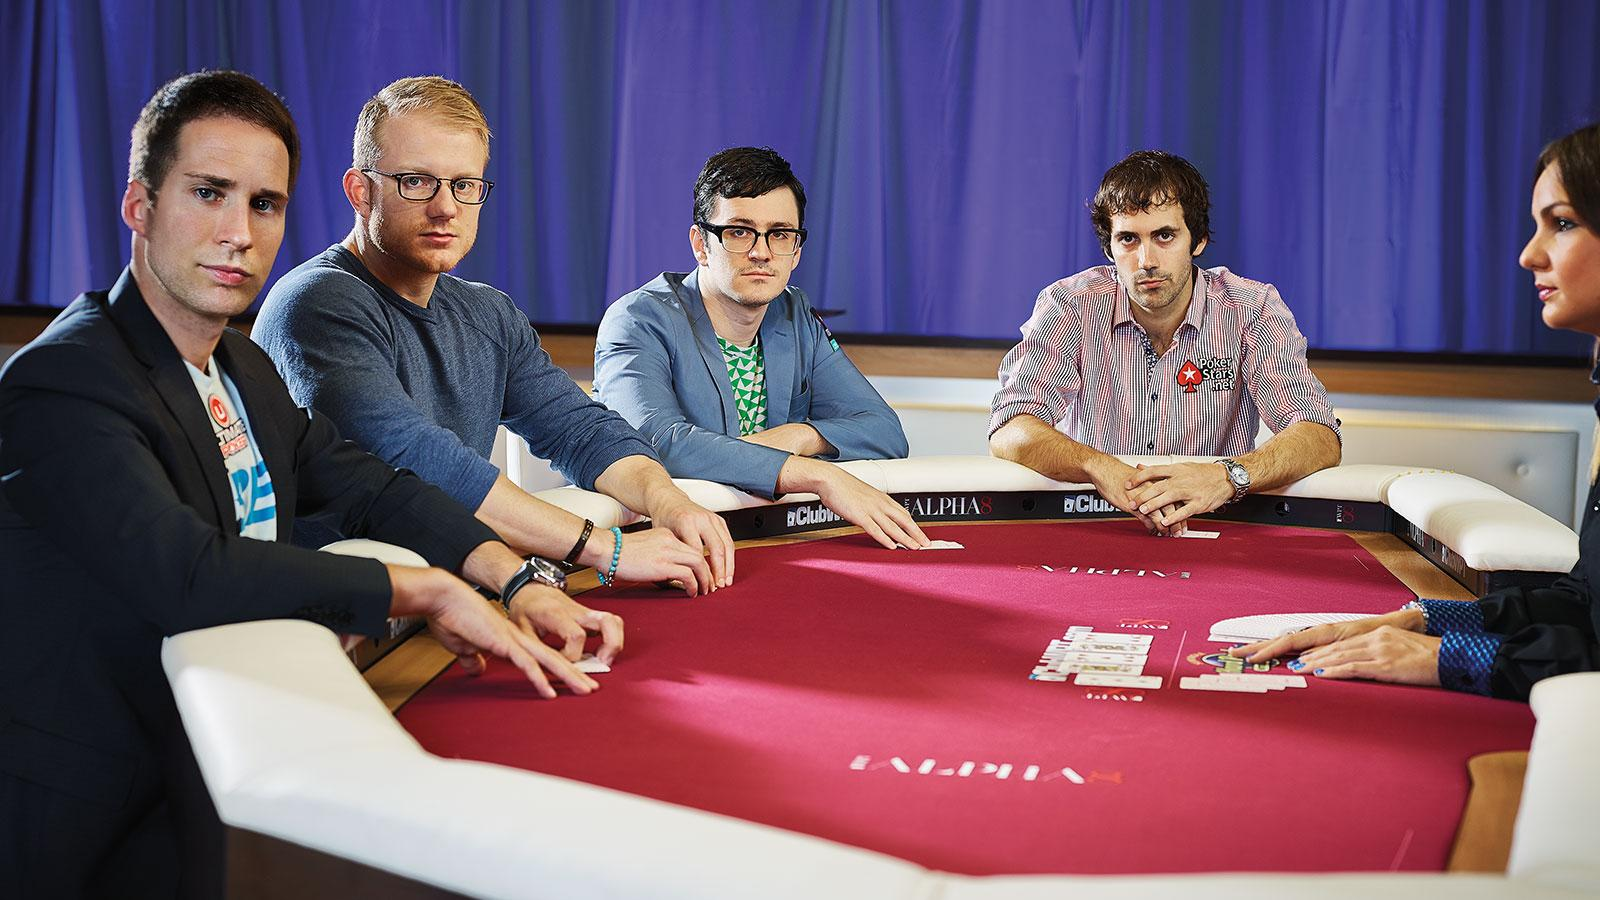 This new crop of talented poker players maintain luxurious travel lifestyles whenever they play in high-stake tournaments. From left to right: Jeff Gross, Jason Koon, Isaac Haxton and Jason Mercier.